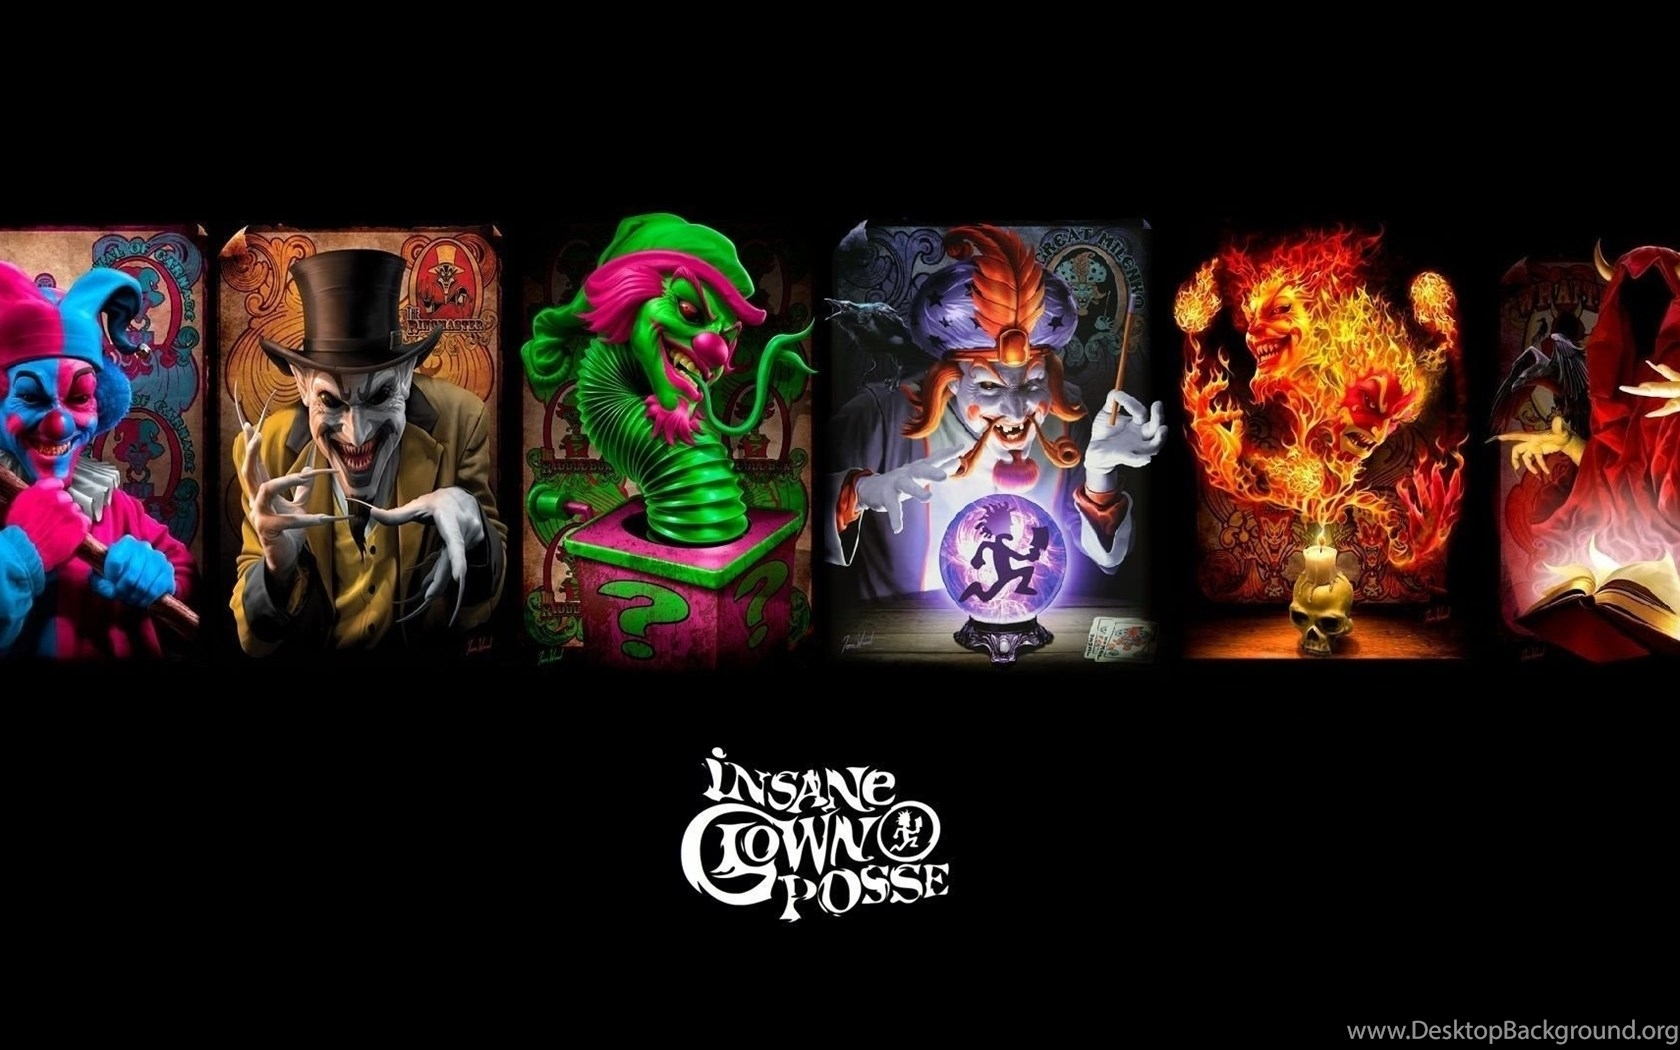 10 Best Insane Clown Posse Backgrounds FULL HD 1080p For PC Desktop